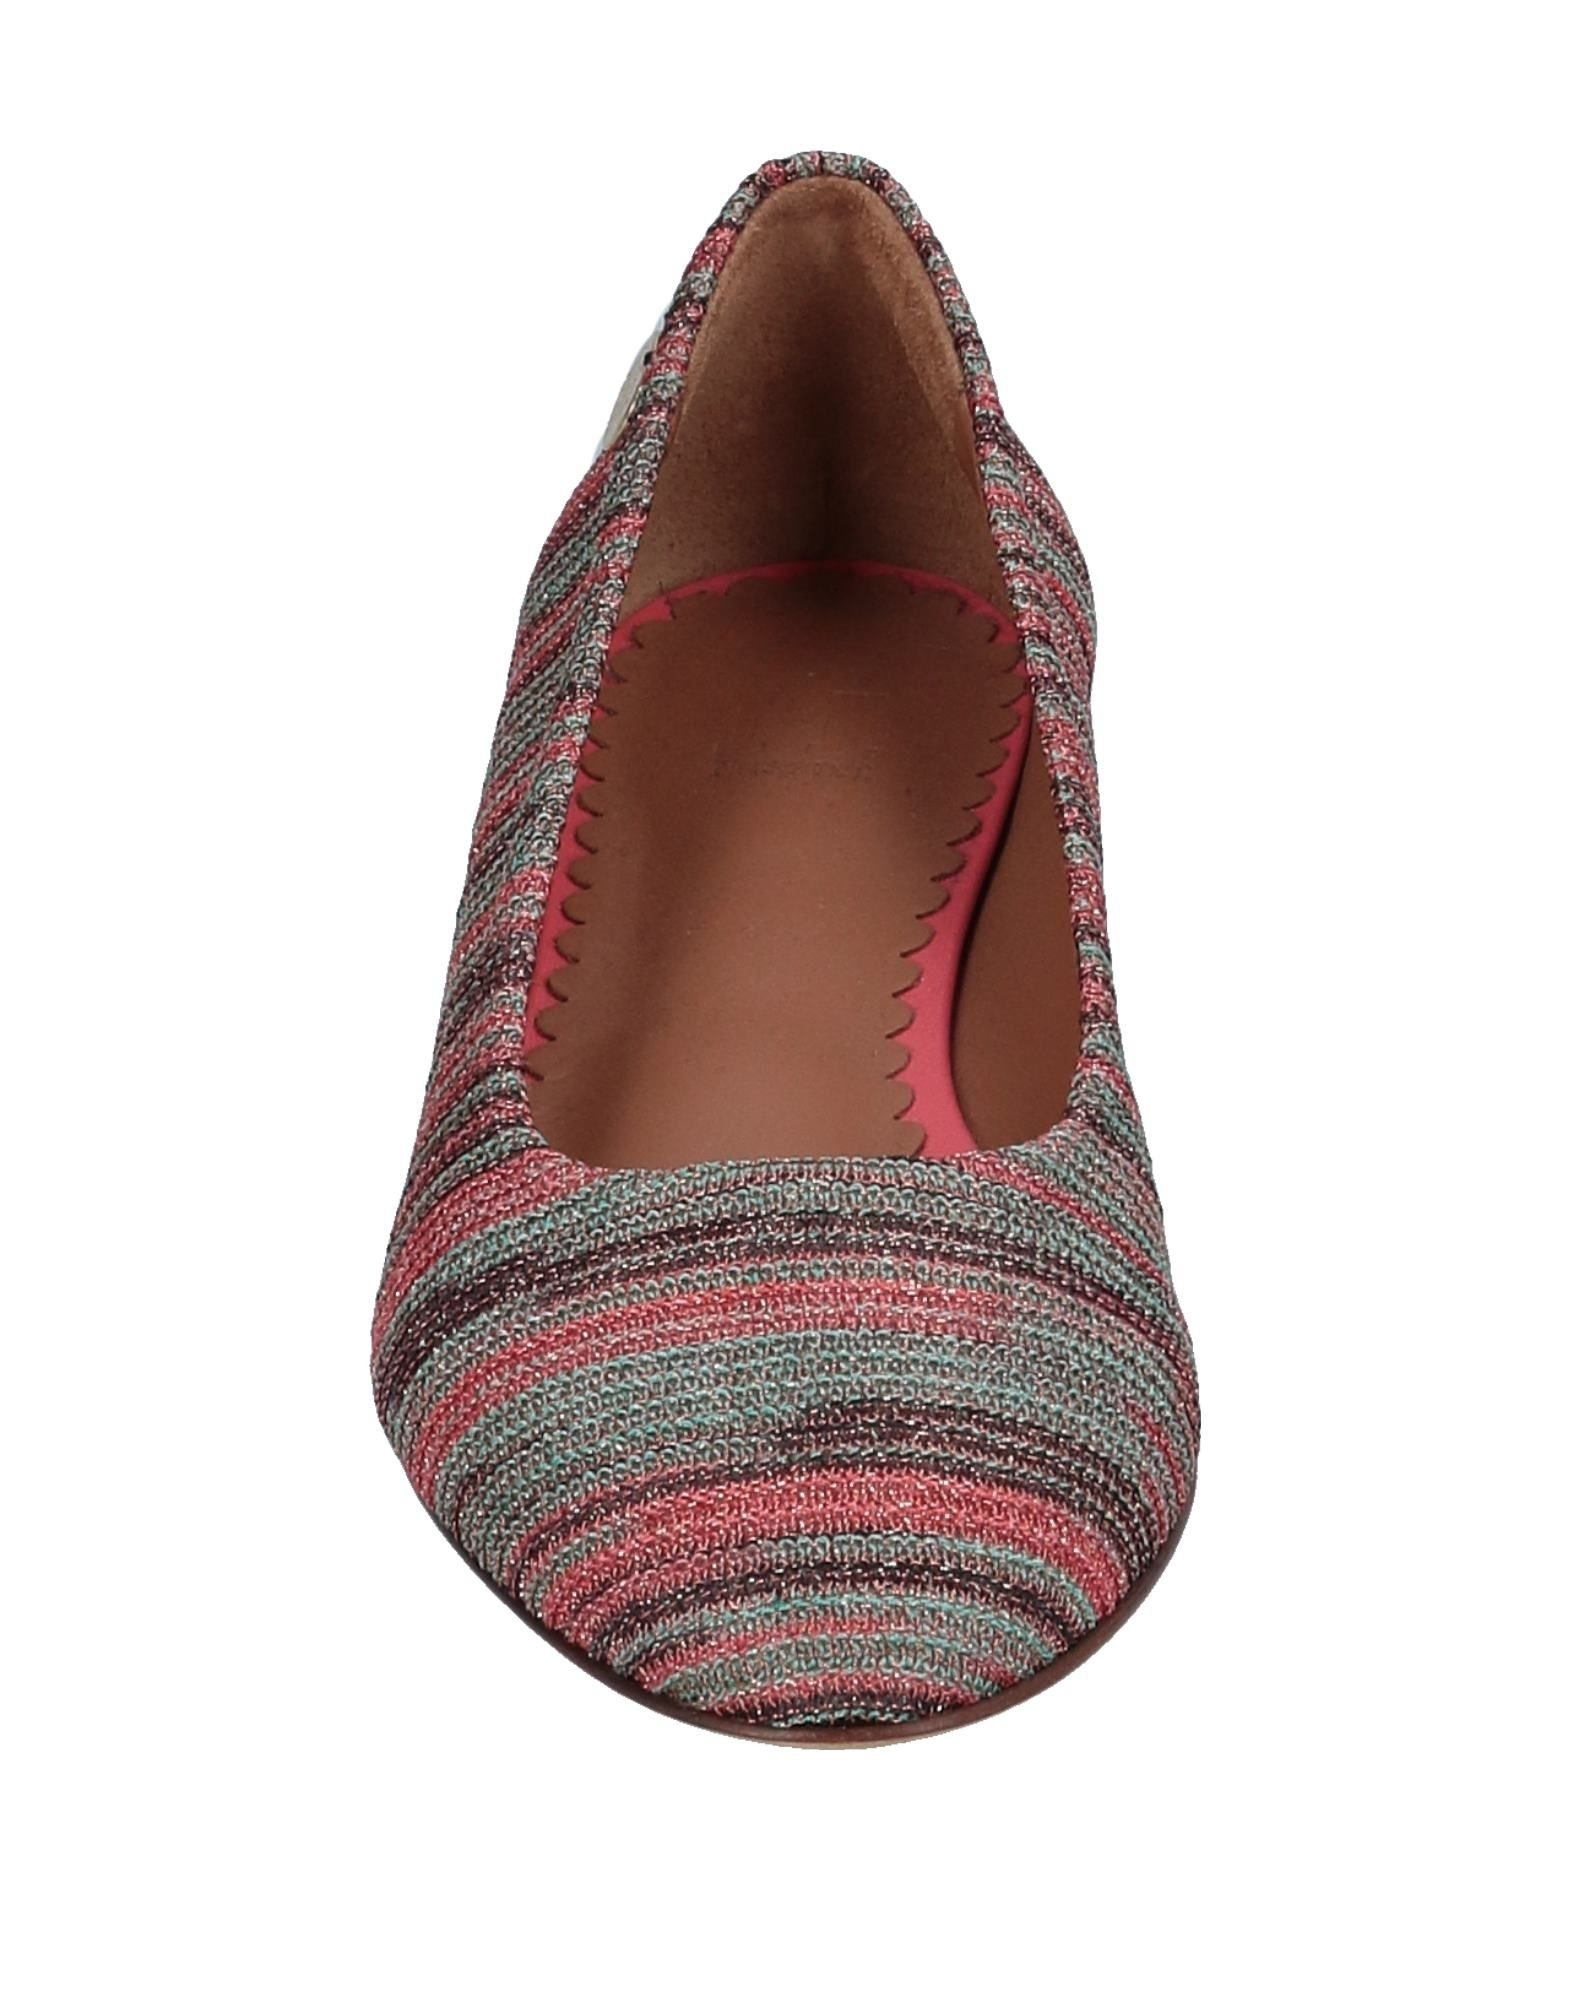 Stilvolle billige Schuhe M Missoni 11558733DX Ballerinas Damen  11558733DX Missoni d7c891